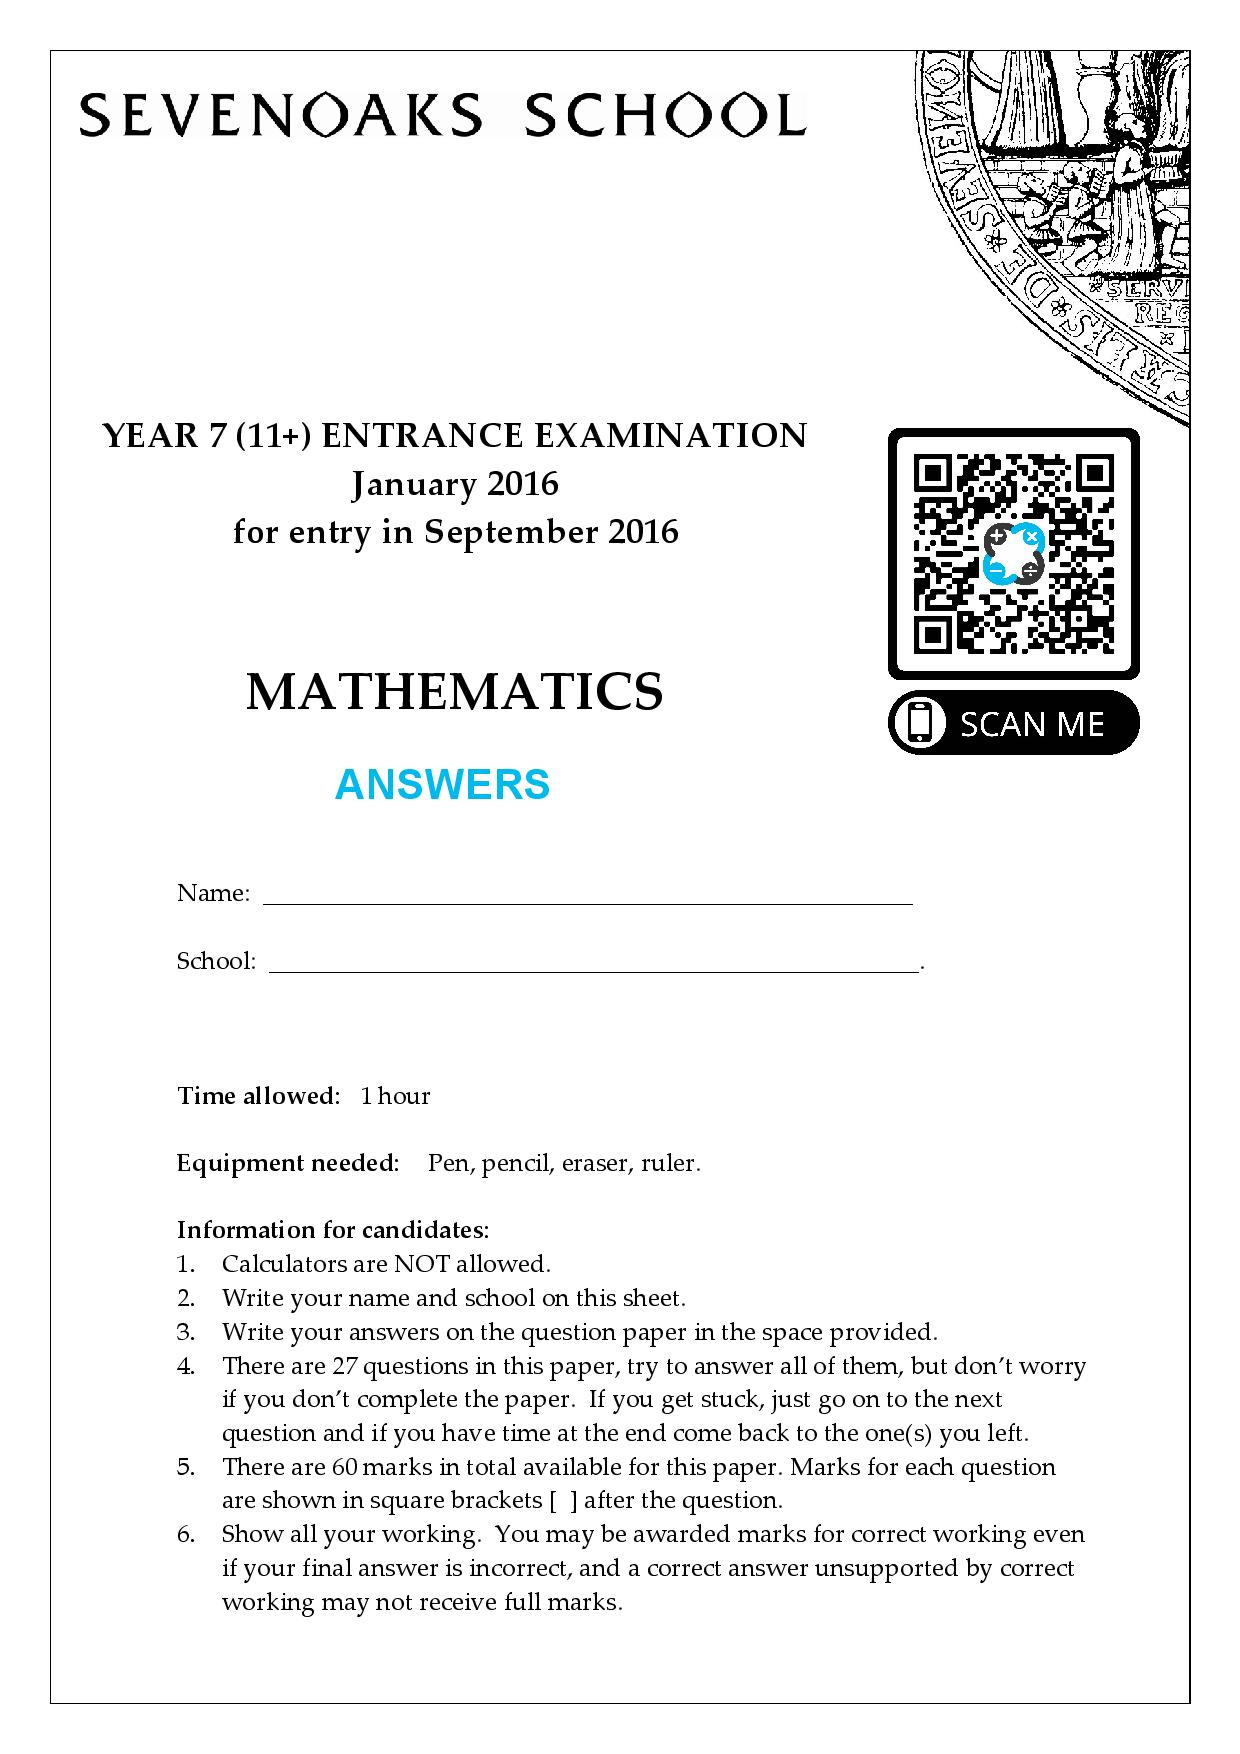 YEAR 7 11 ENTRANCE EXAMINATION January 2016 for entry in September 2016 MATHEMATICS Answer Paper 1 page 001